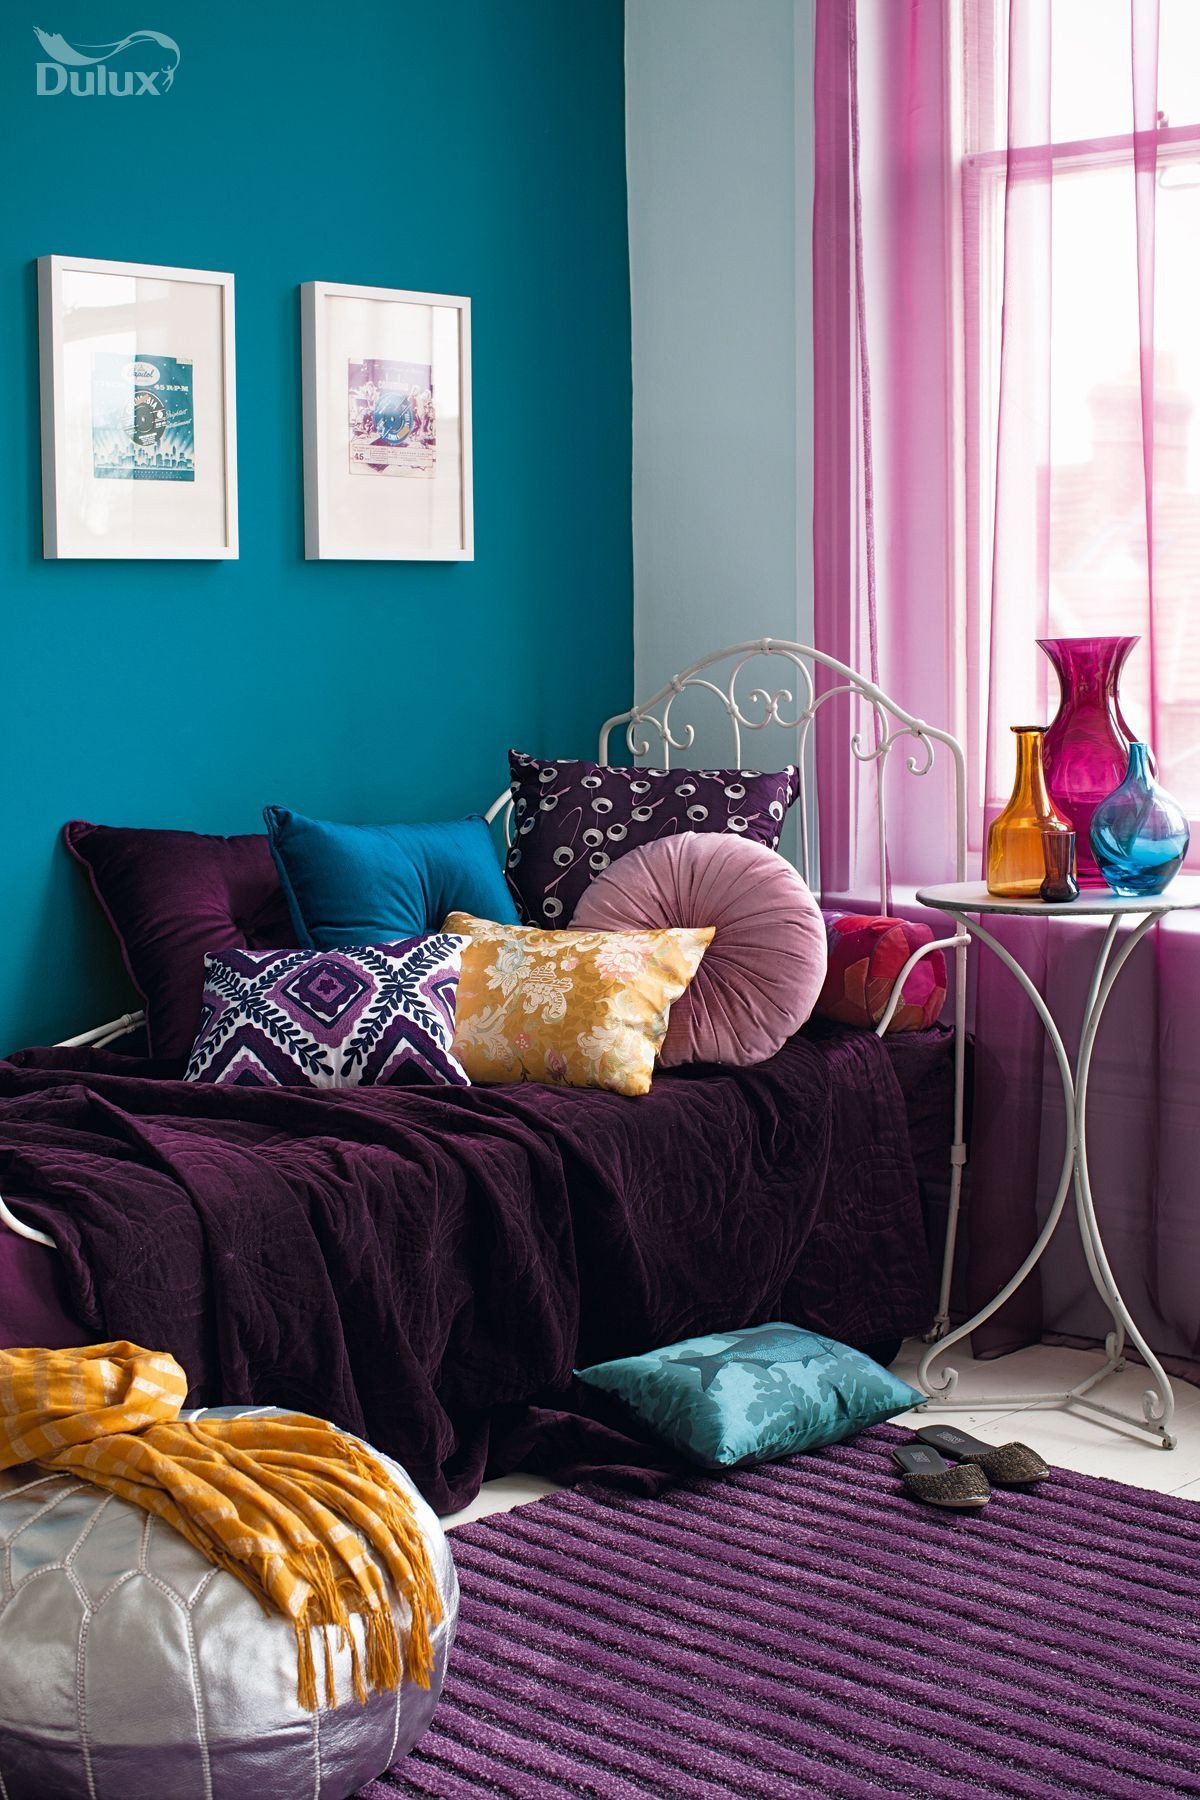 Teal and Gray Bedroom Luxury Diy Bedroom Ideas for Girls Boys Furniture